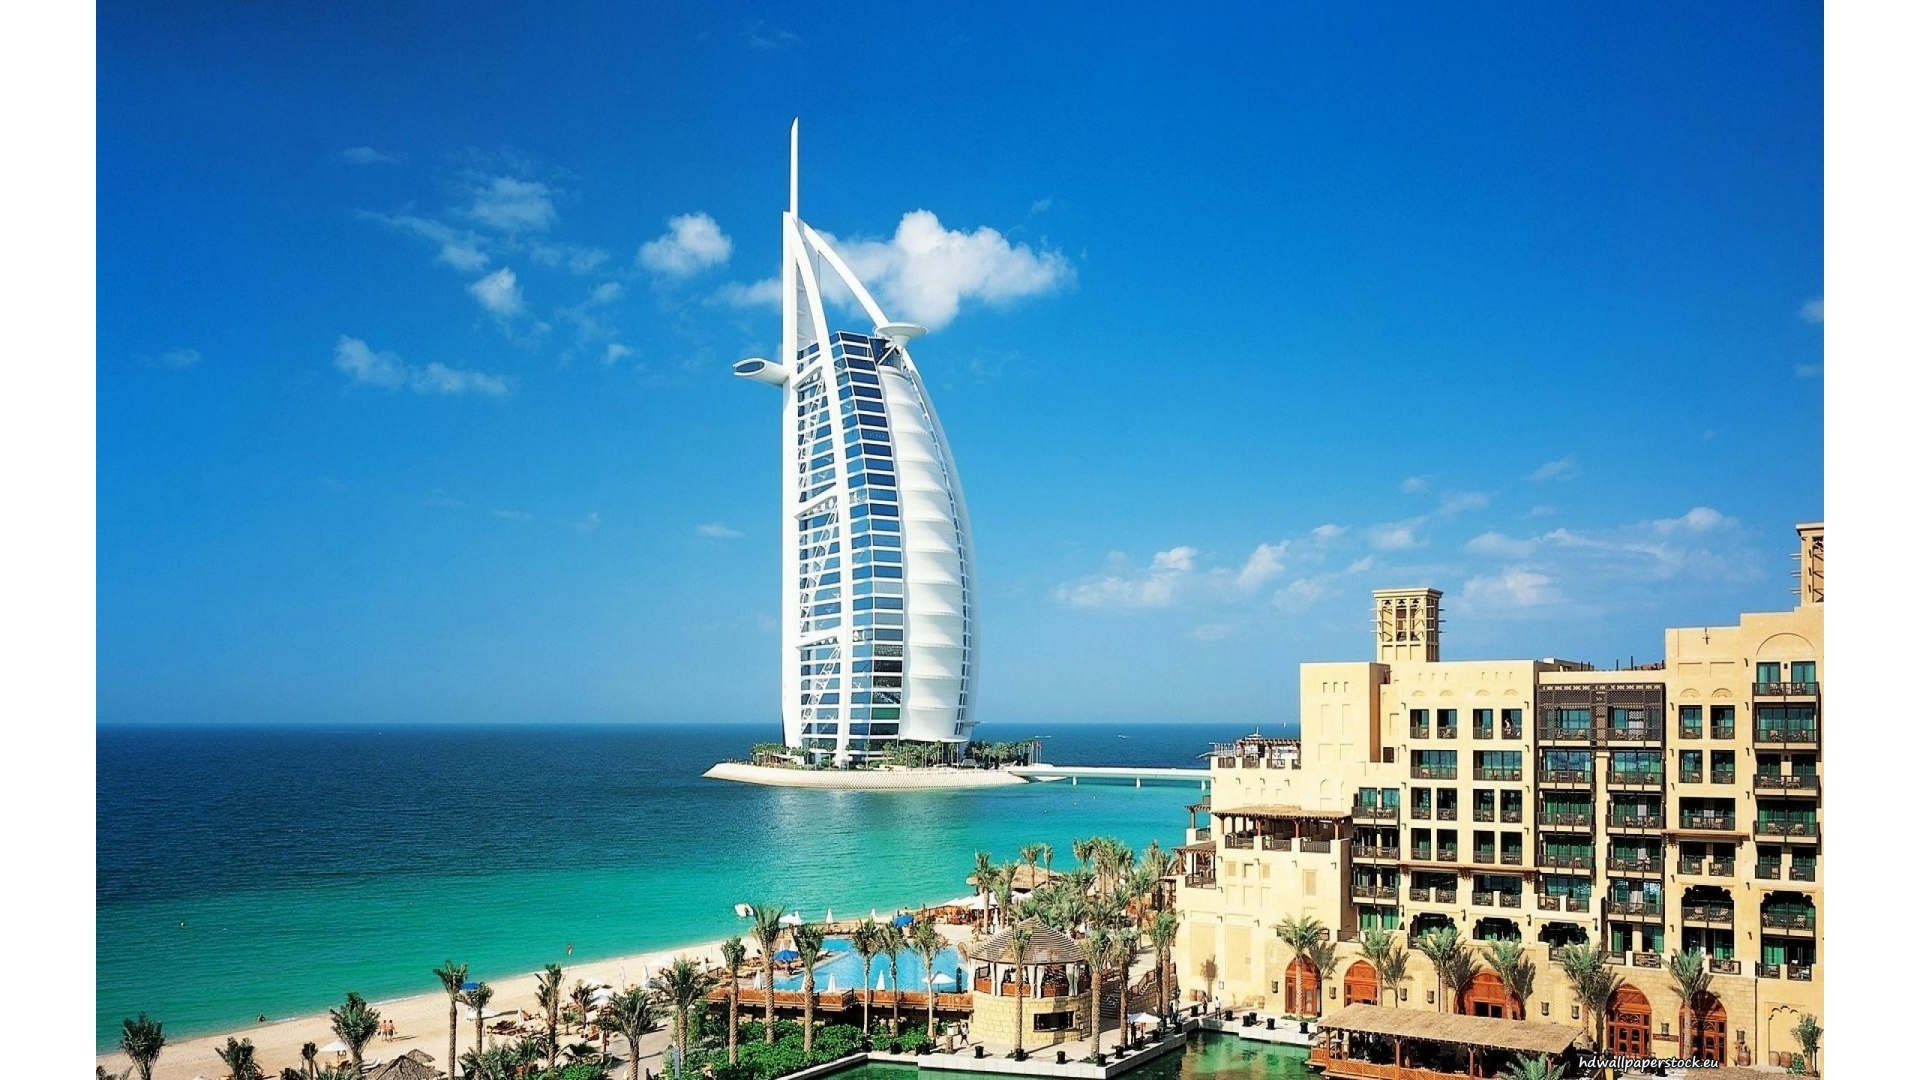 Burj al arab wallpapers pictures images for Burj arab dubai